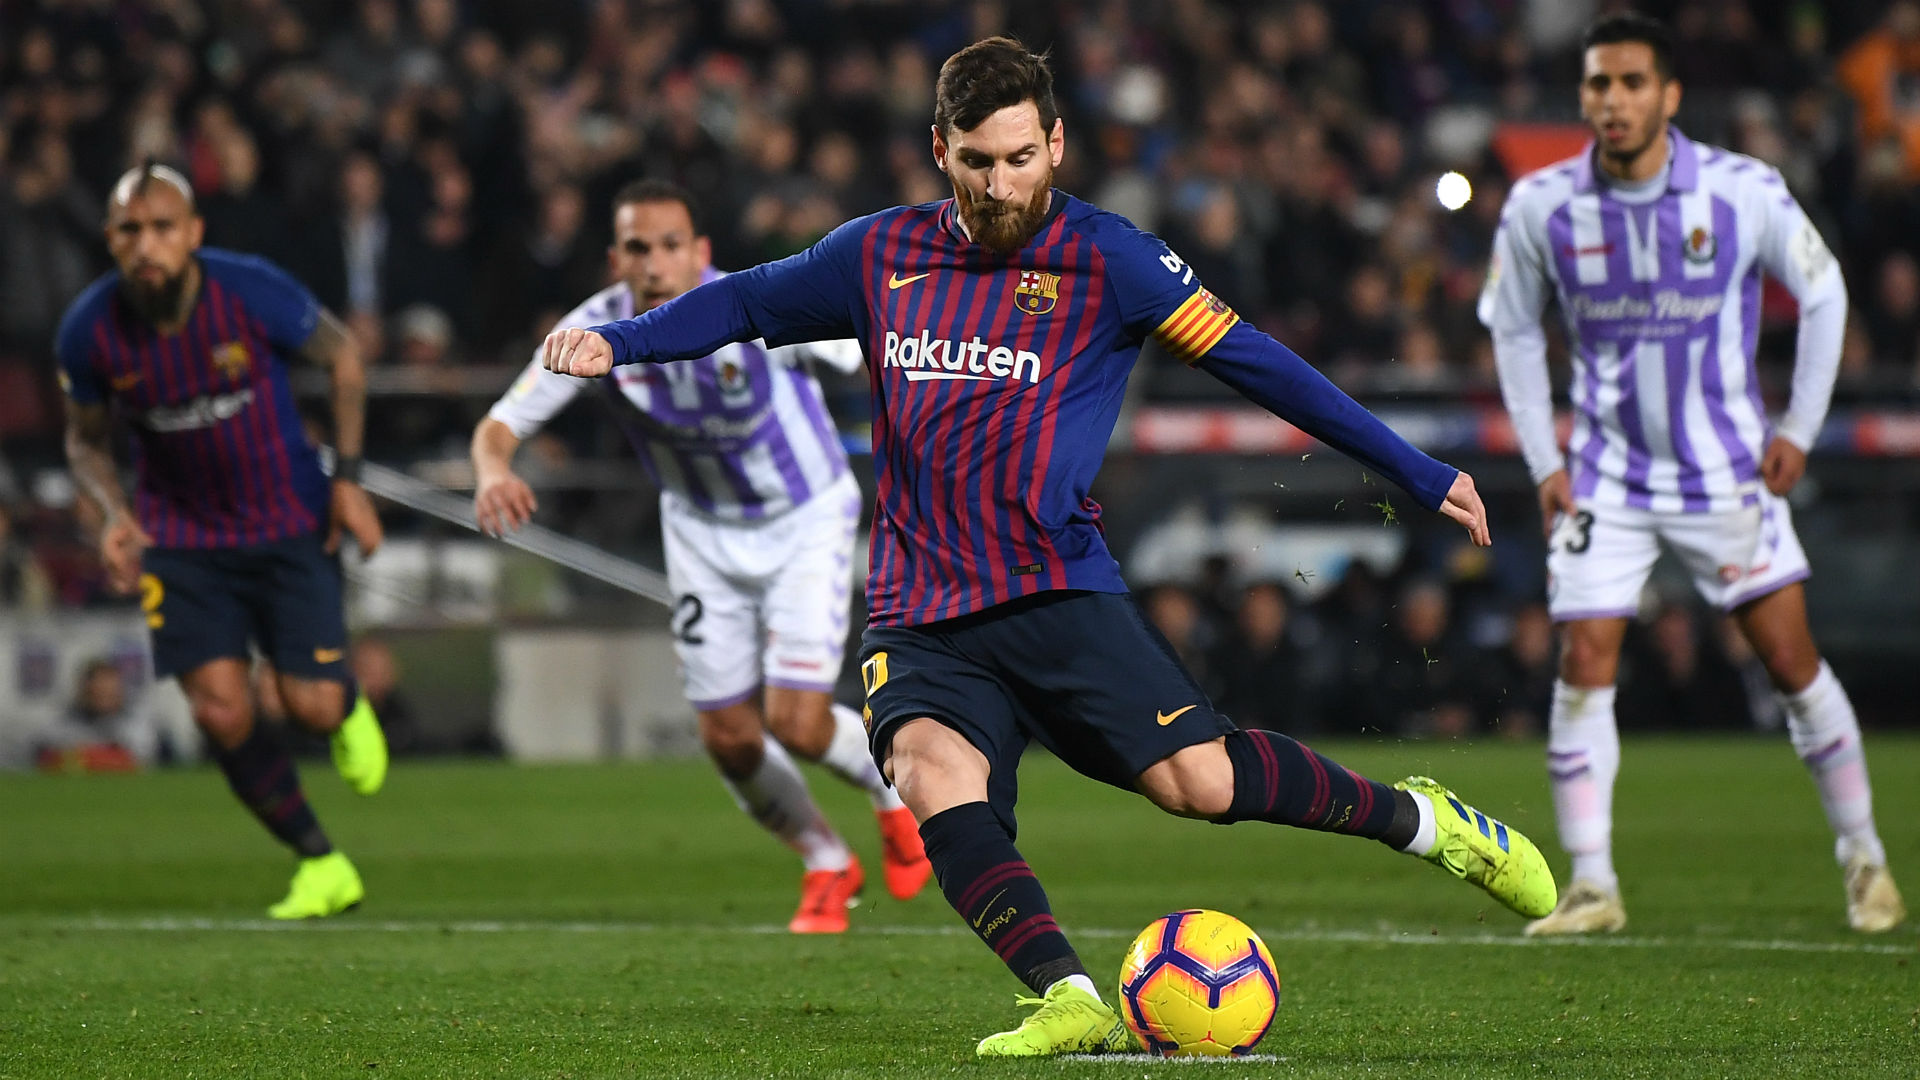 Barcelona 1 Real Valladolid 0: Hit and miss as Messi gets job done